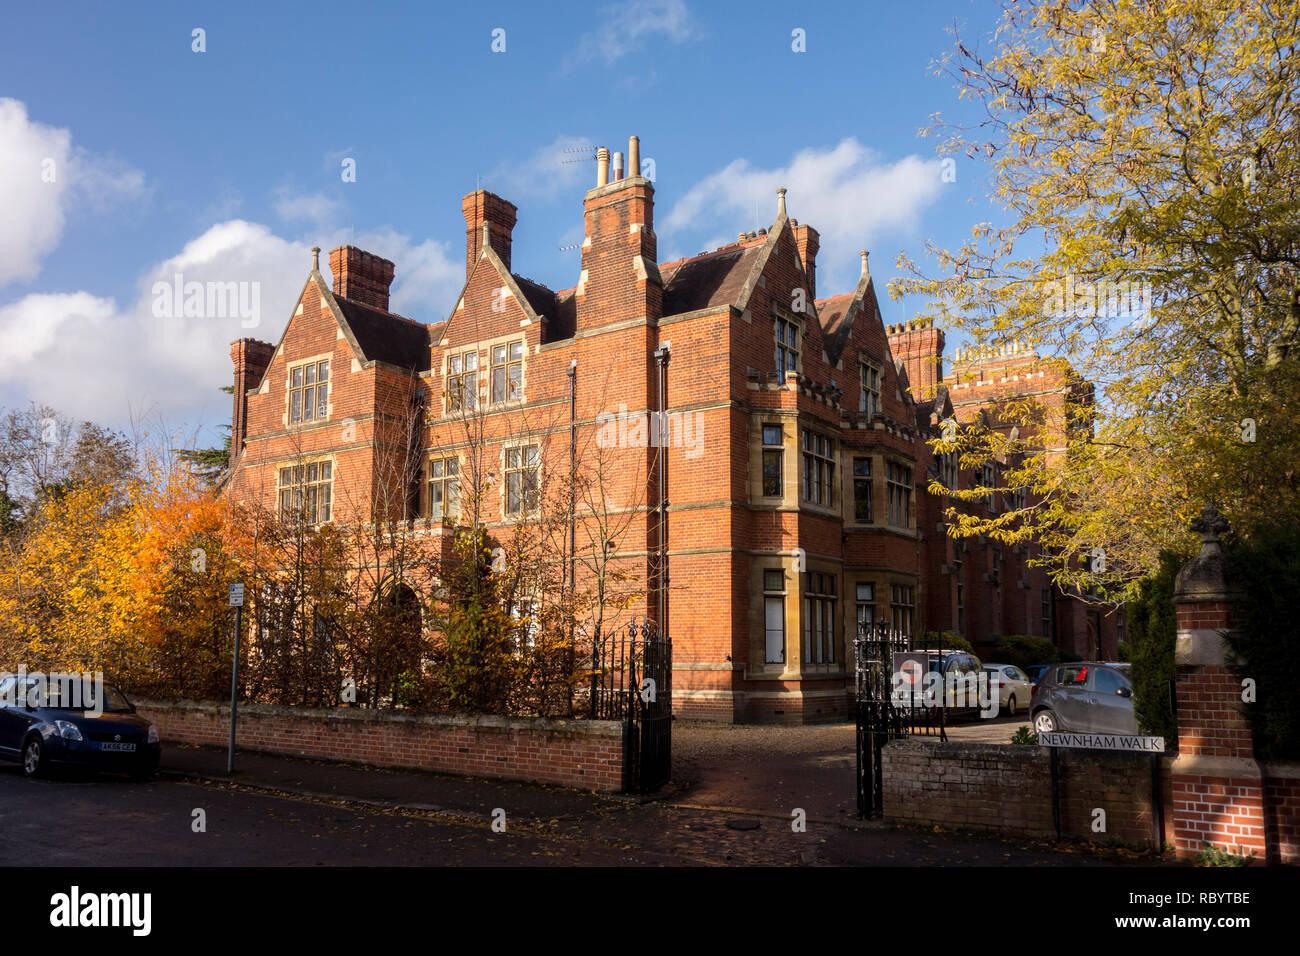 Ridley Hall, Cambridge, theological college, Cambridge, UK - Stock Image